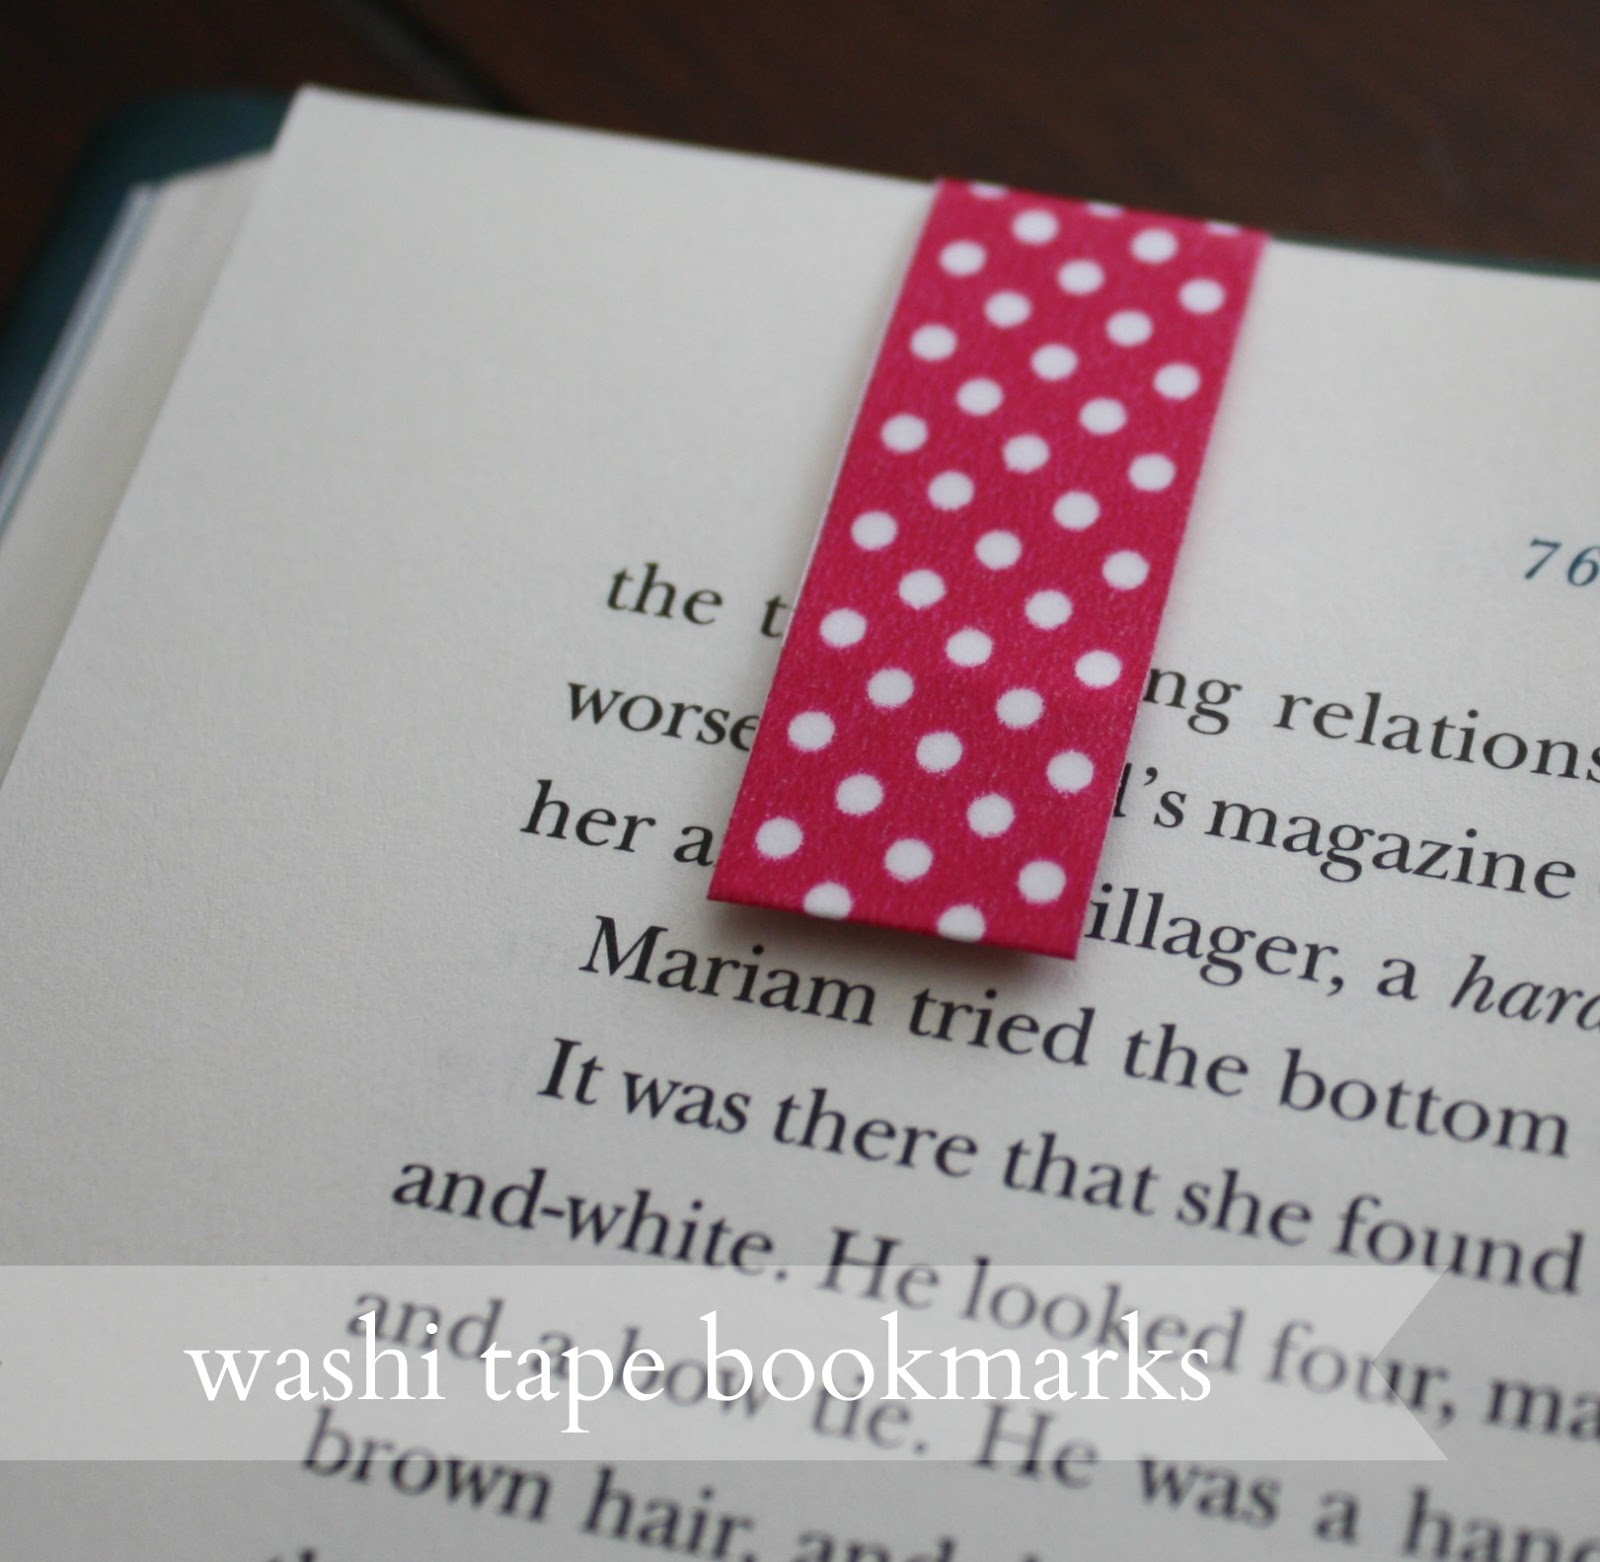 Live a little wilder washi tape bookmarks tutorial for What is washi tape and how do you use it